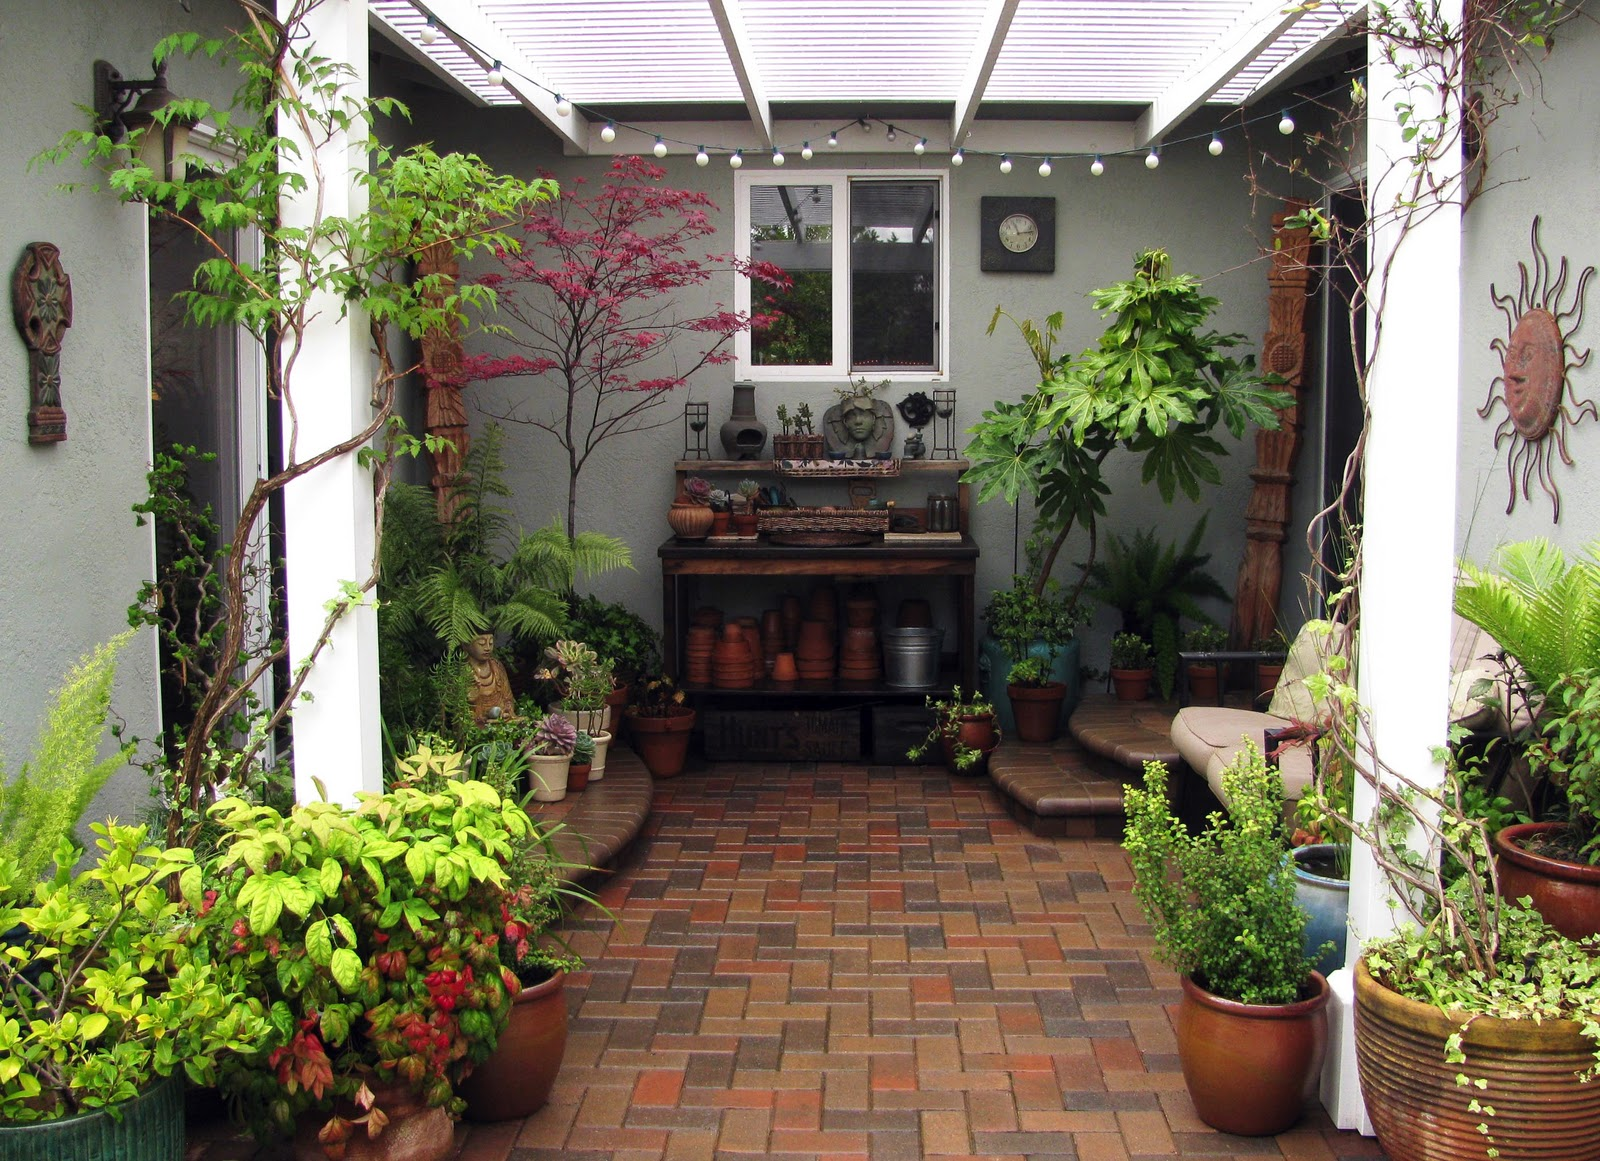 Interleafings garden designers roundtable expanding for Designing a garden space